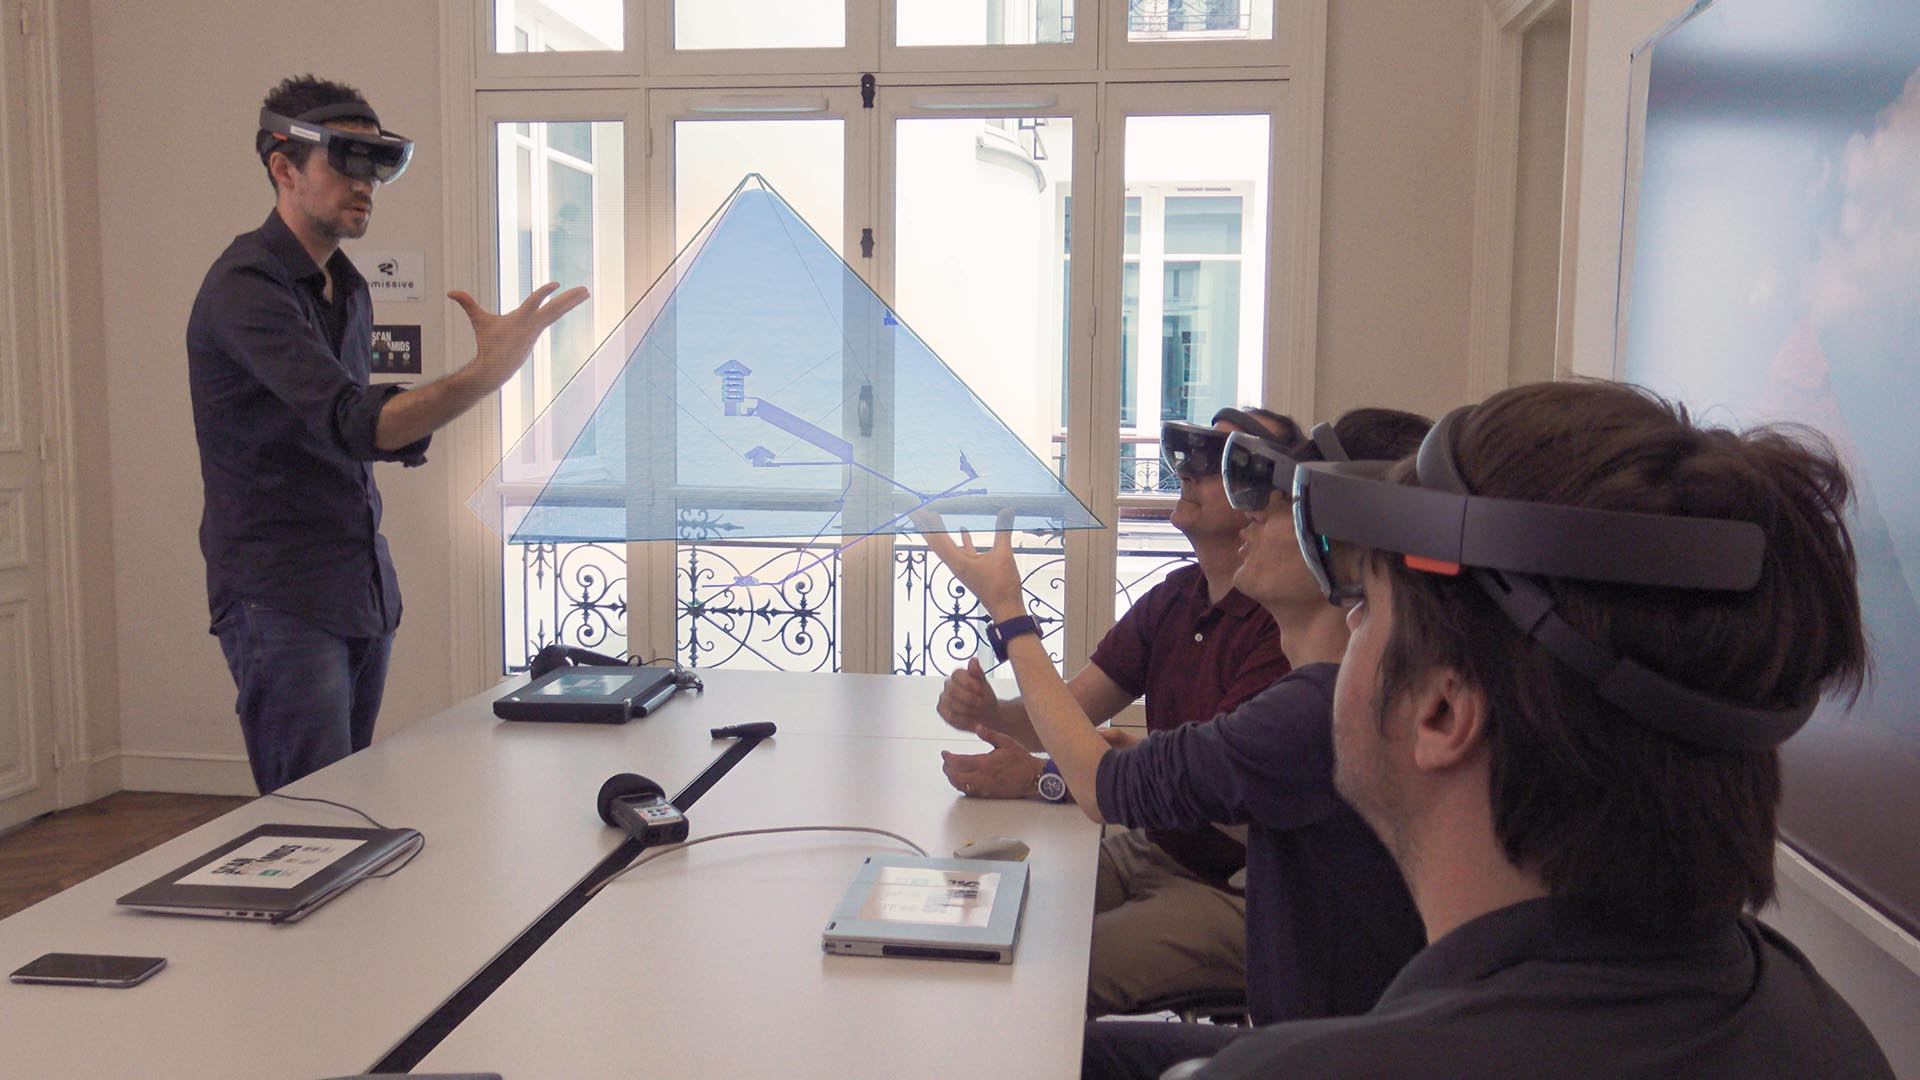 Presentation-of-the-results-of-Scan-Pyramids-in-augmented-reality